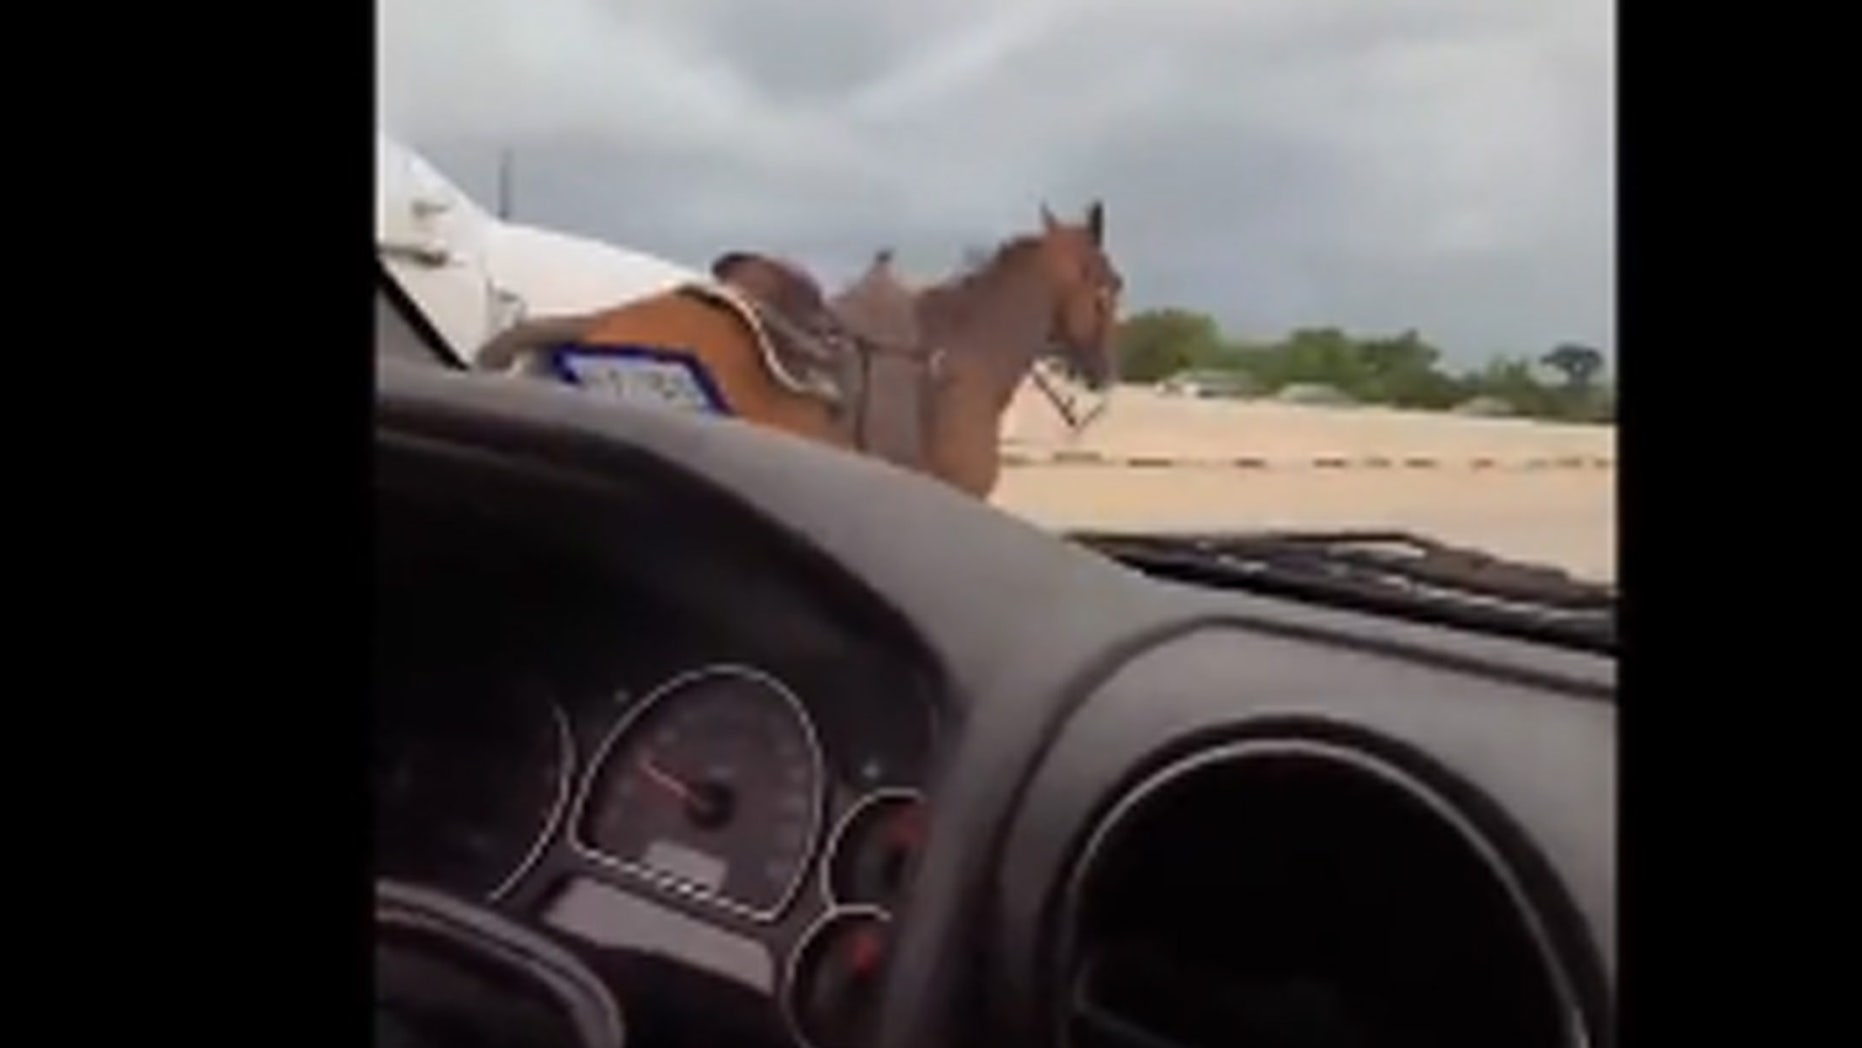 A viral video showed drivers in Houston capture a horse that was running in the middle of the highway.